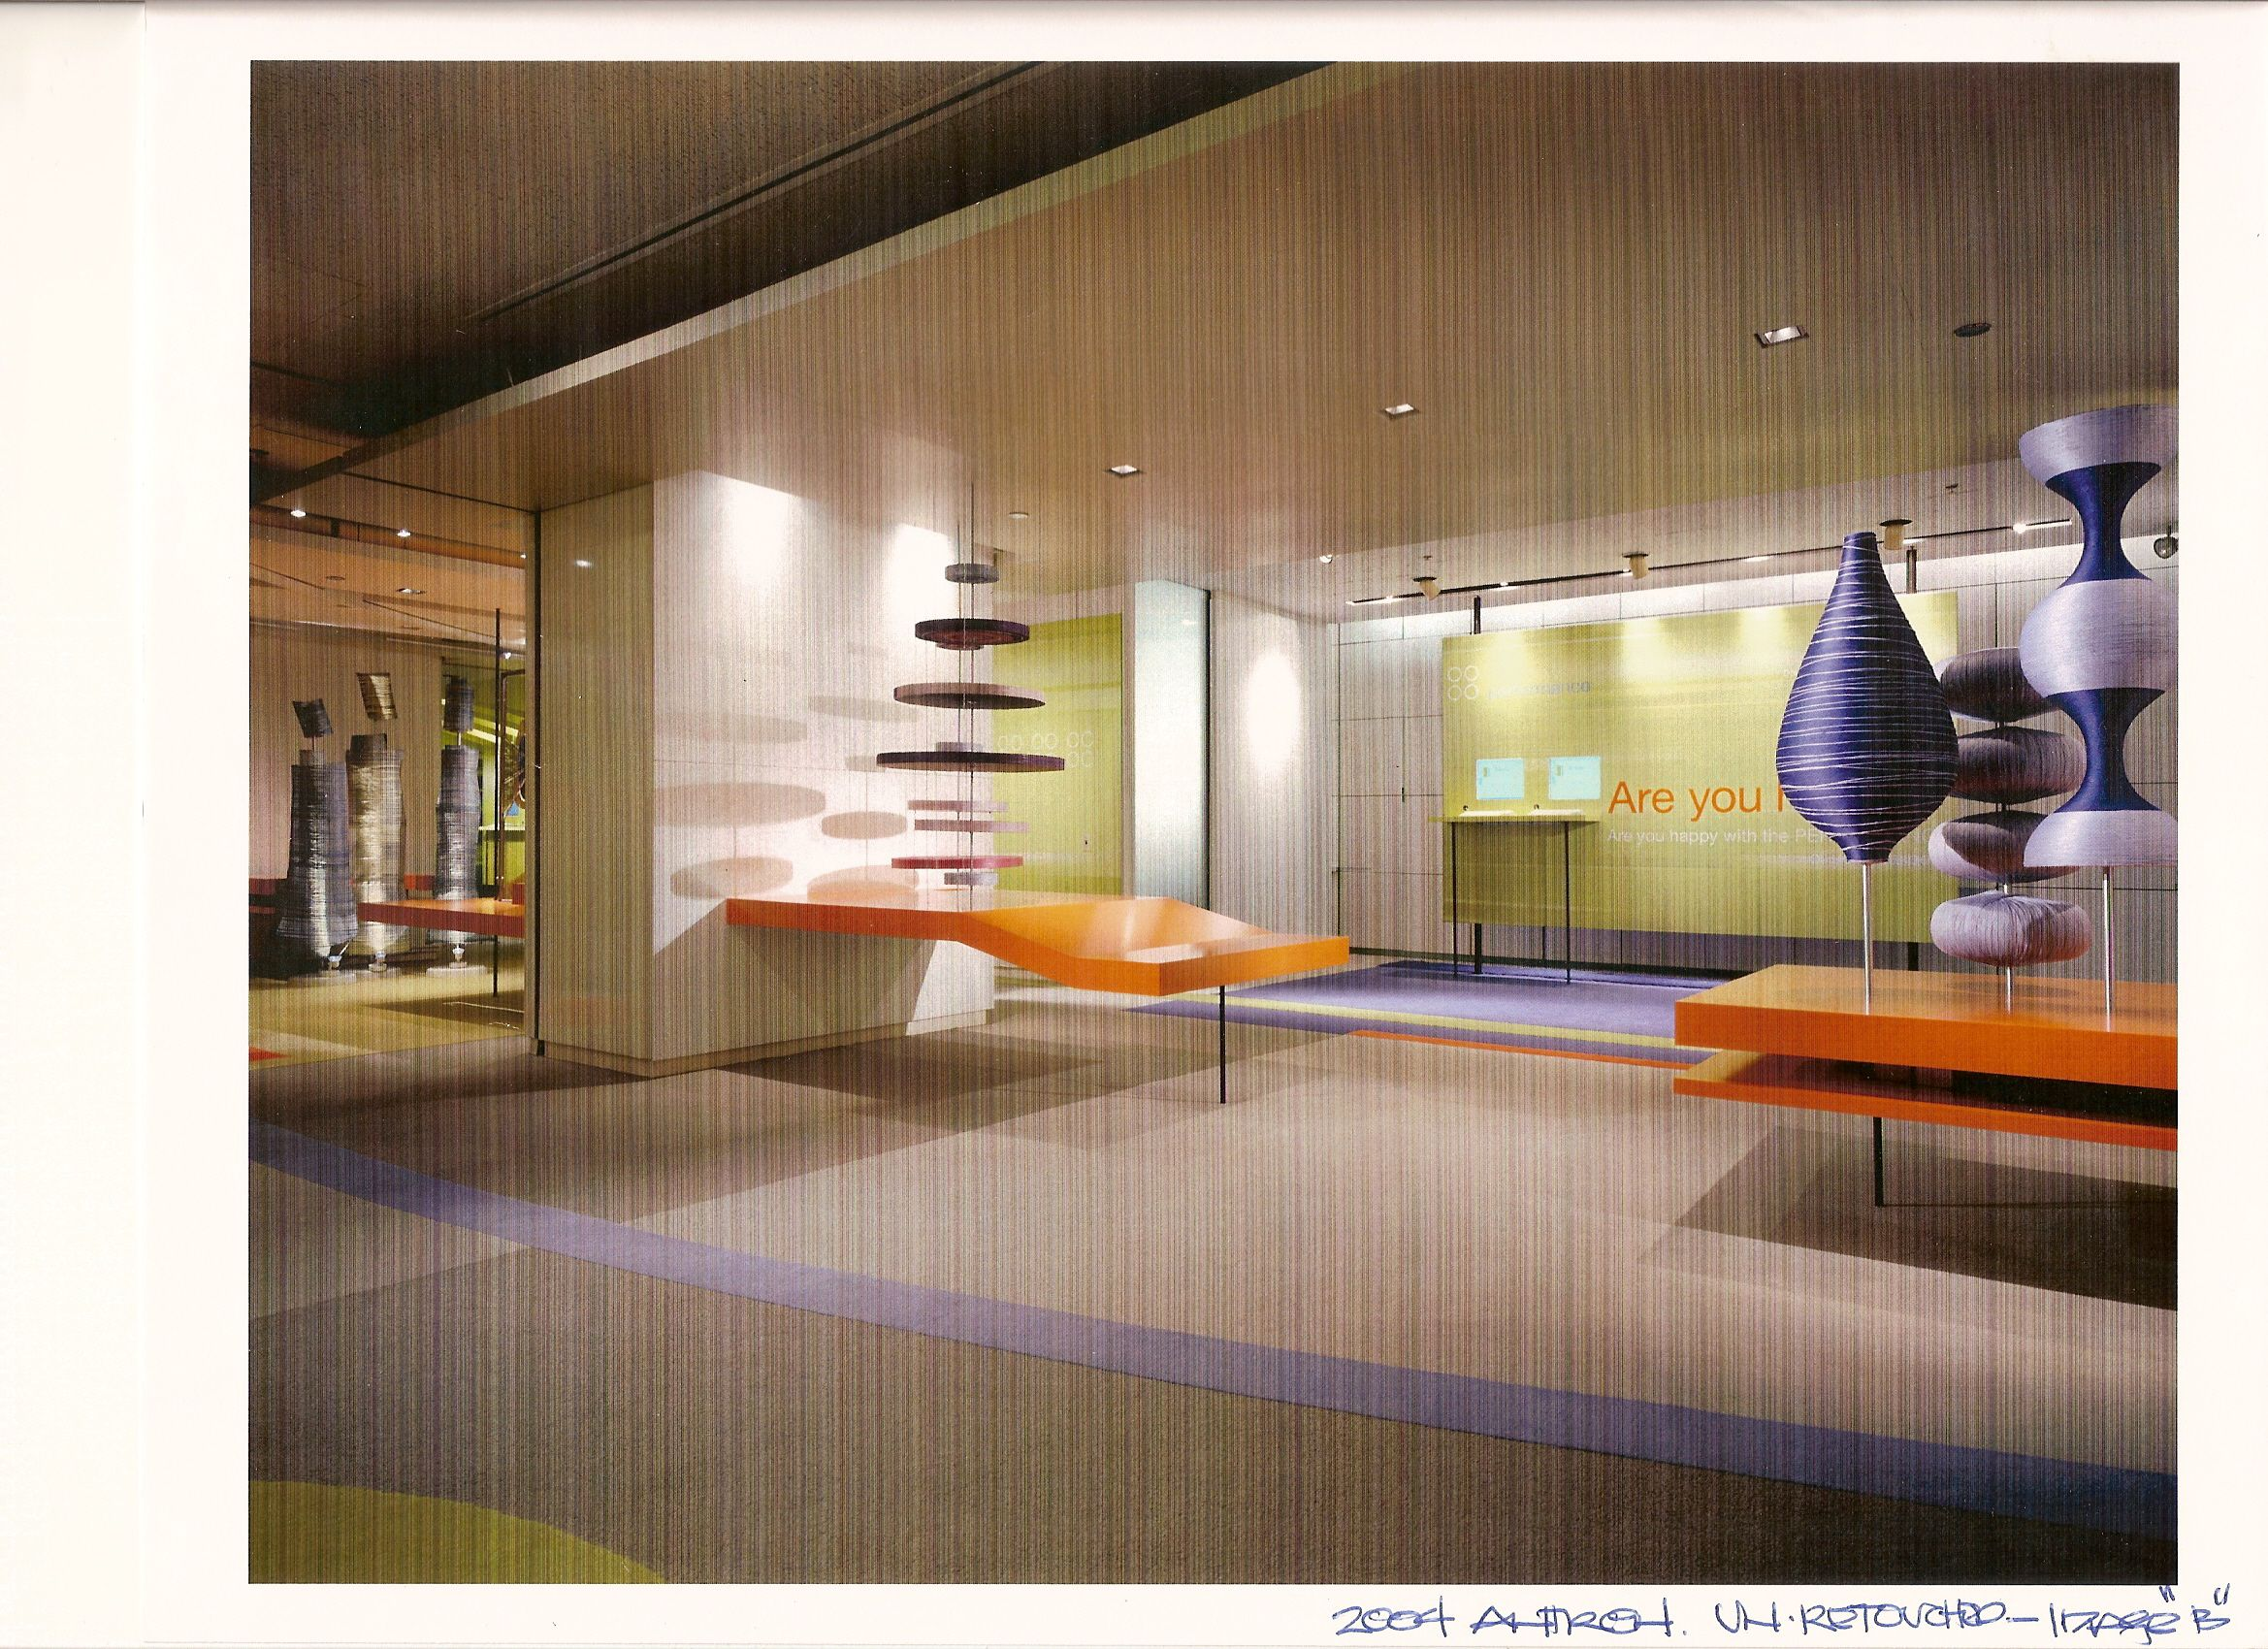 Millwork, graphics, and fiber art production by Ndio.